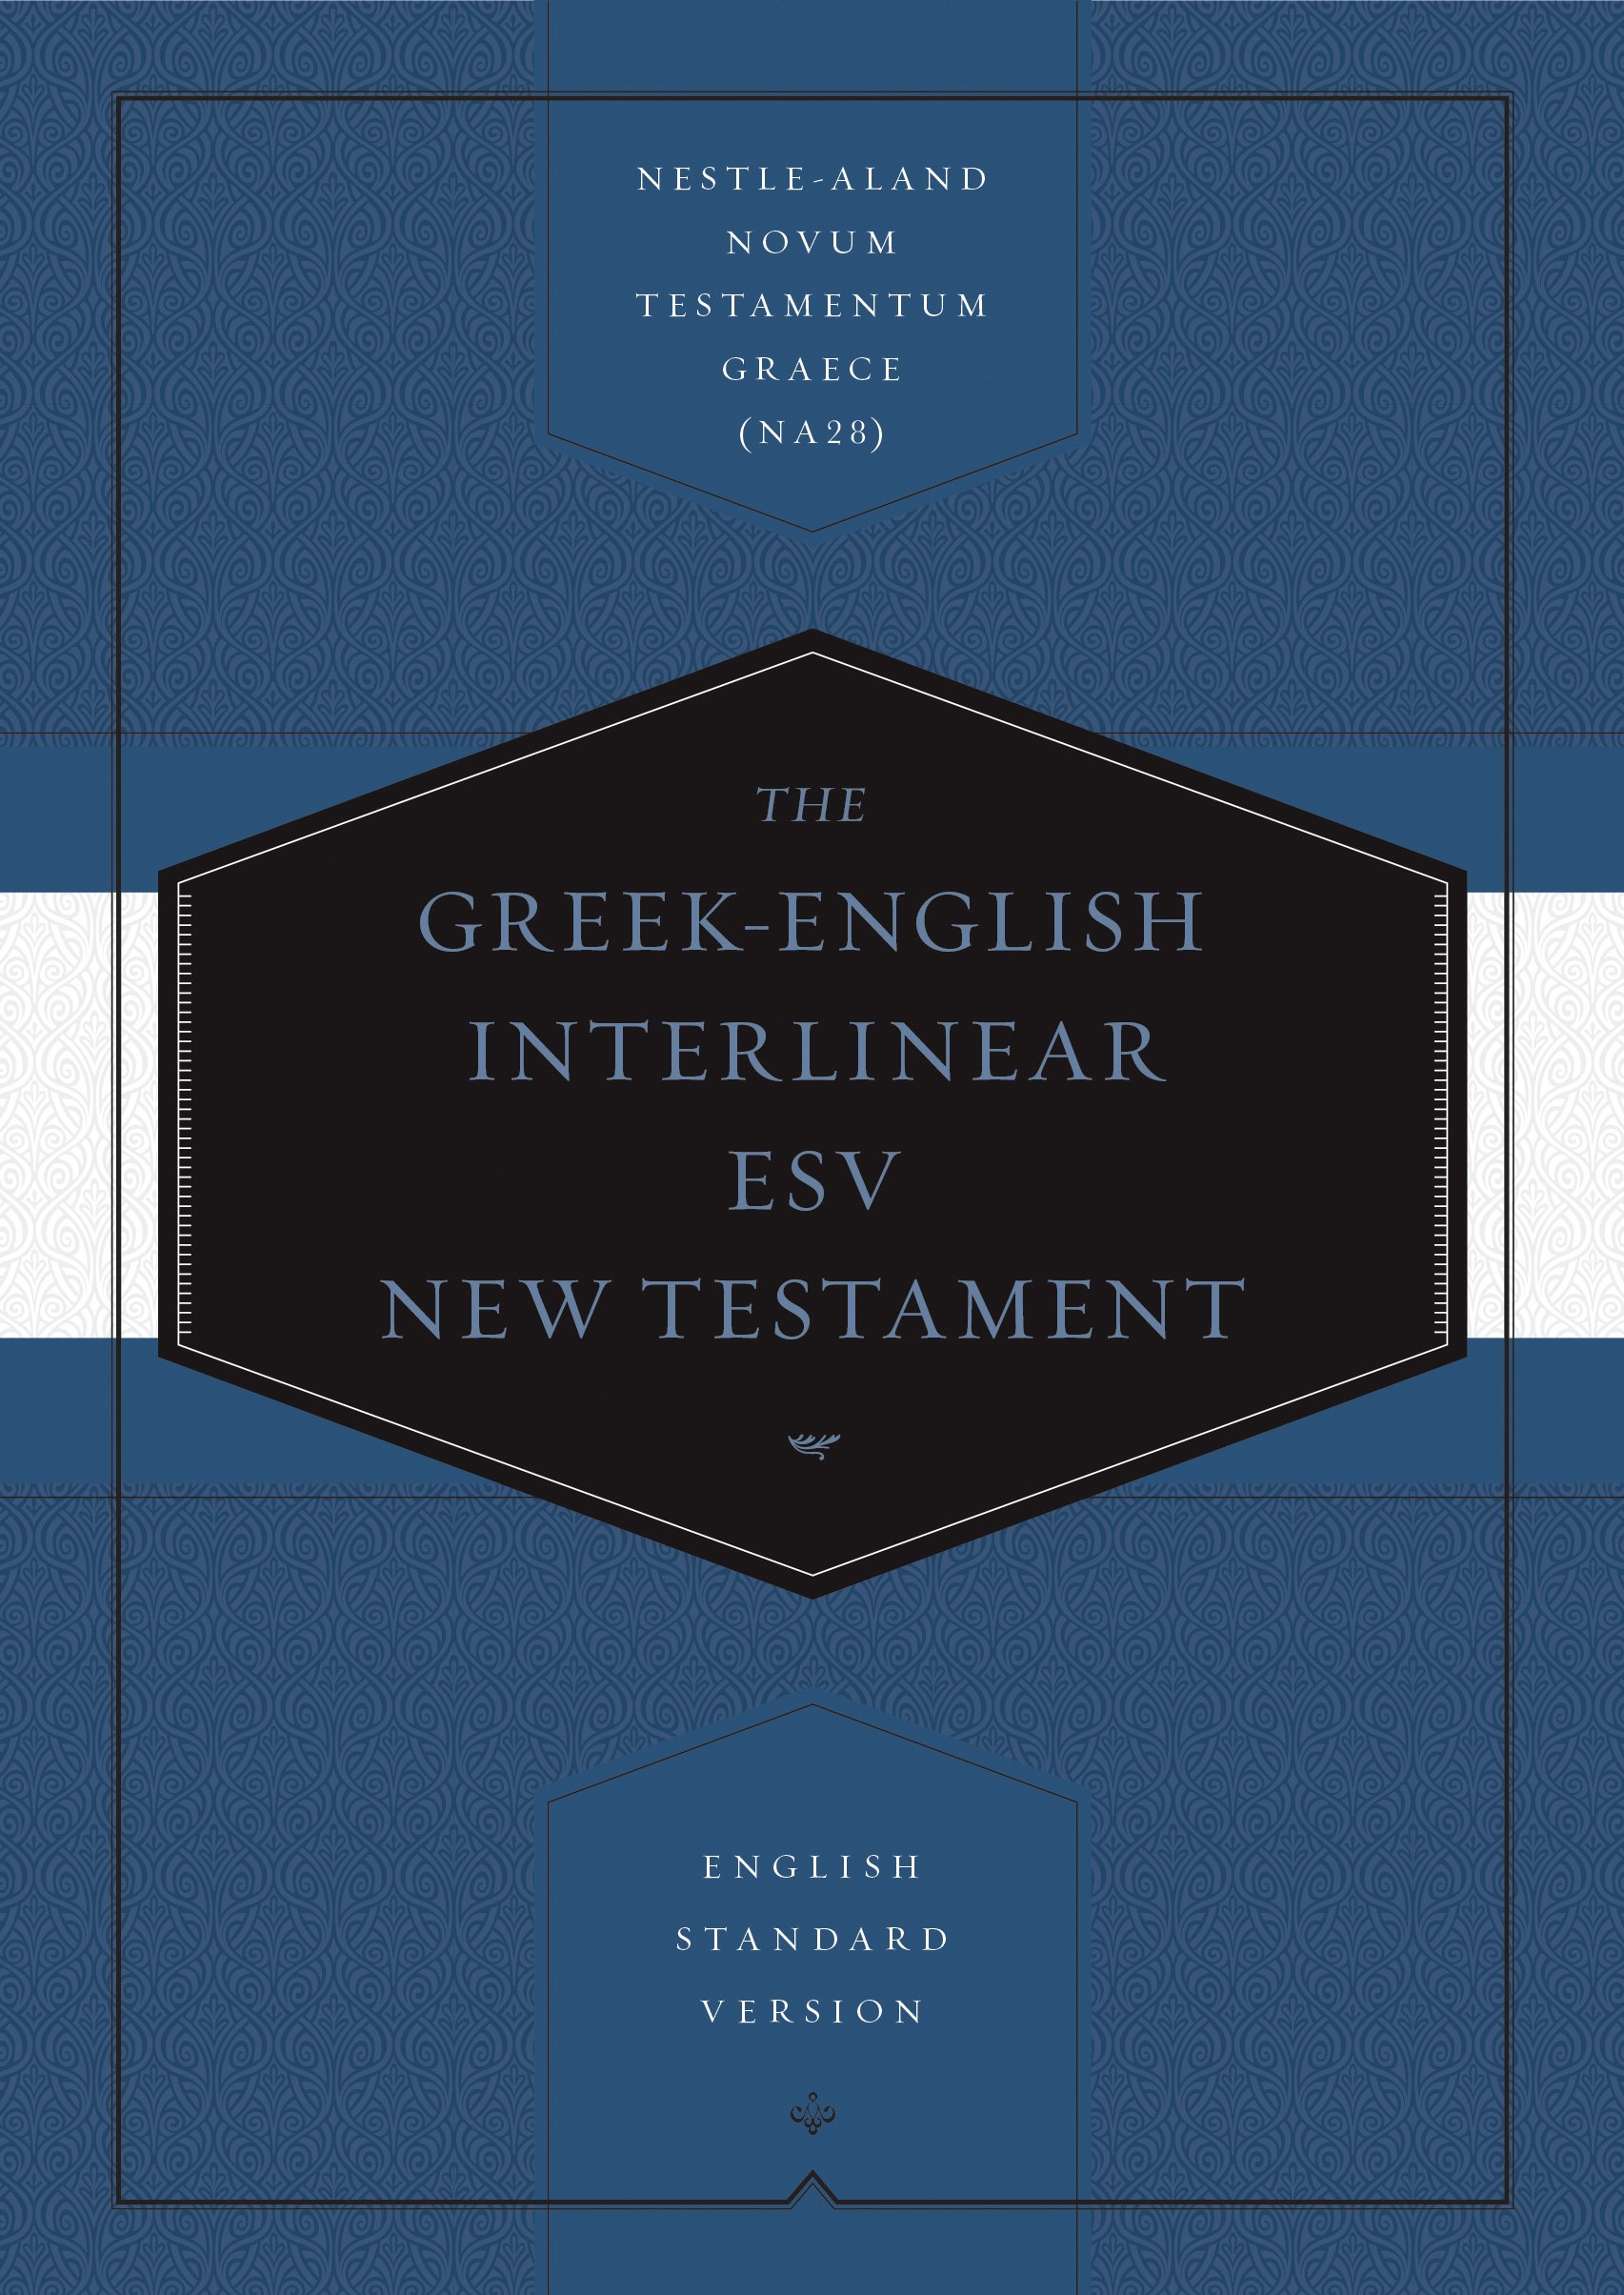 Greek-English Interlinear ESV New Testament: Nestle-Aland Novum Testamentum Graece (Na28) and English Standard Version (ESV) by ESV Bibles by Crossway, ISBN: 9781433530326